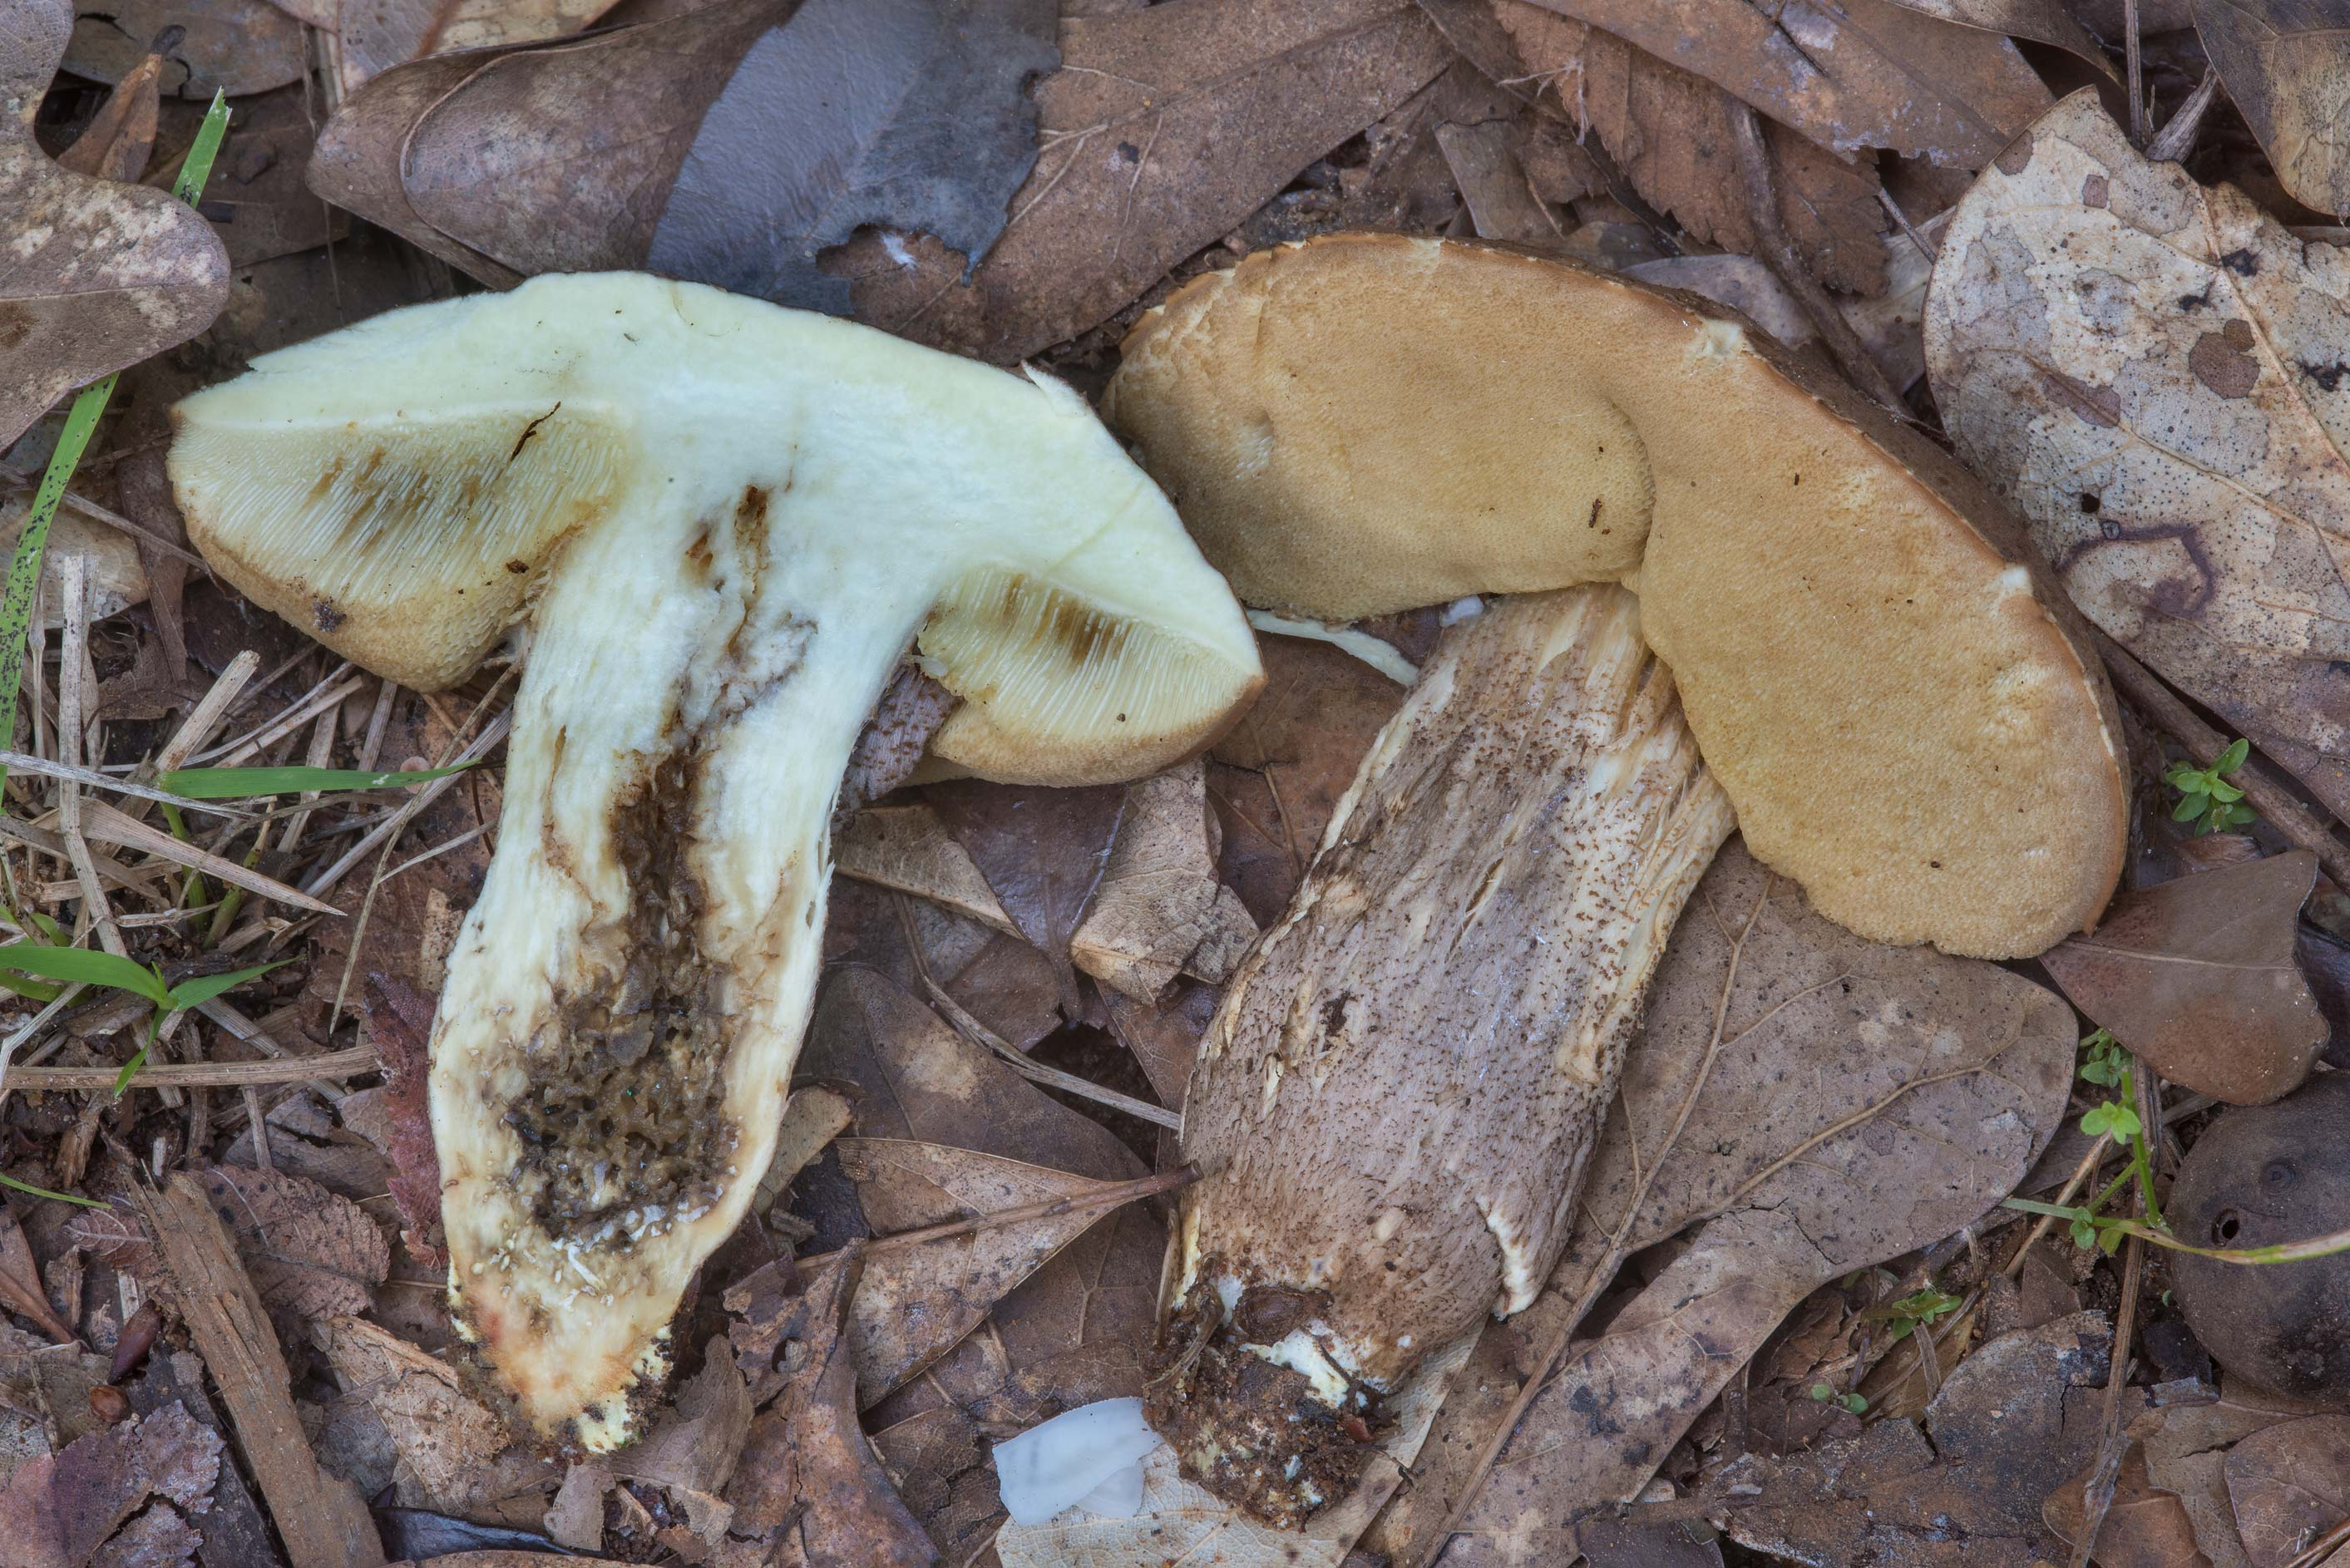 Dissected bolete mushroom Leccinum in Lick Creek Park. College Station, Texas